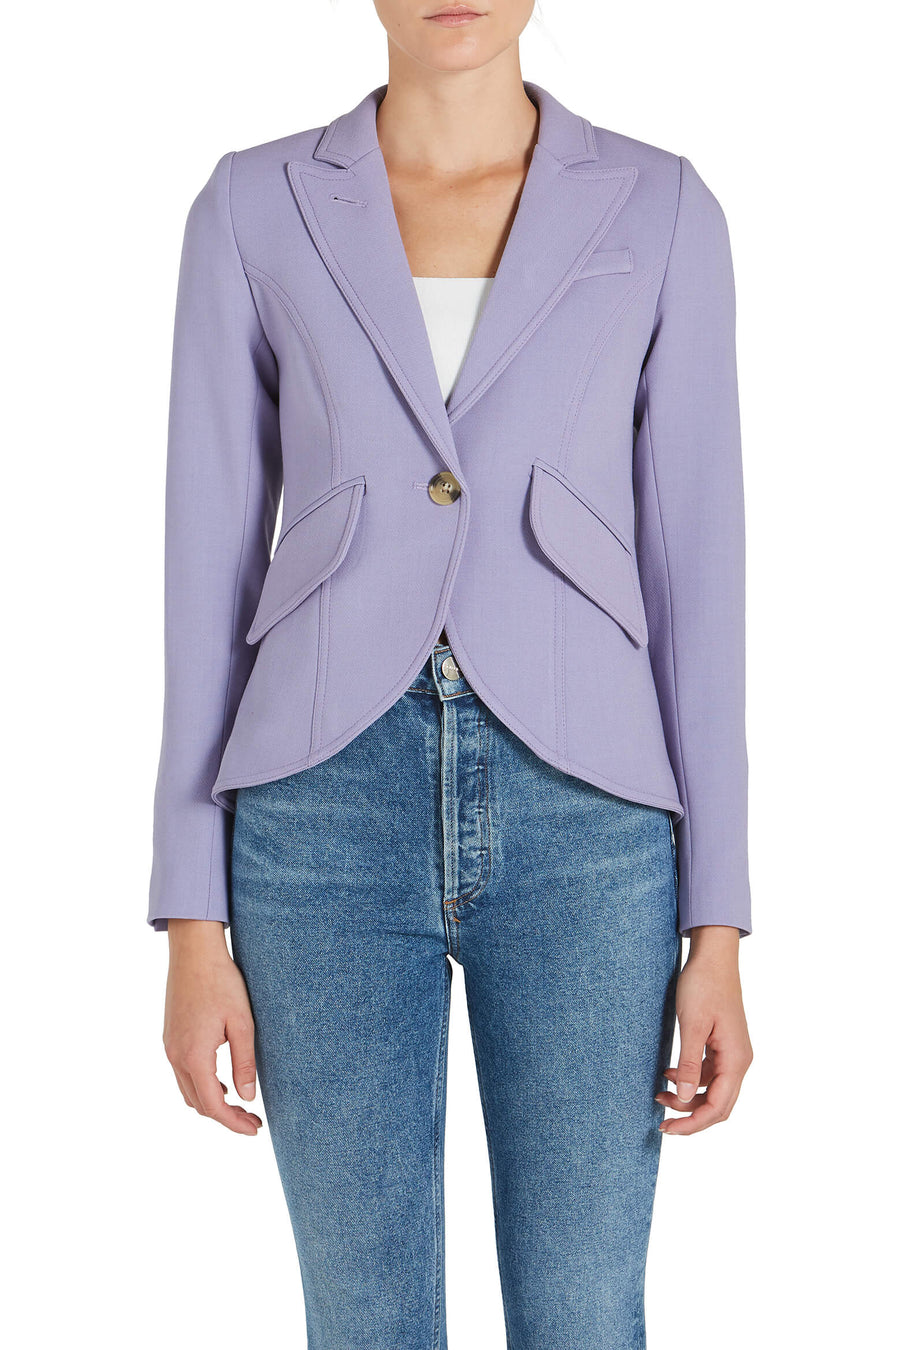 Smythe One Button Blazer from The New Trend